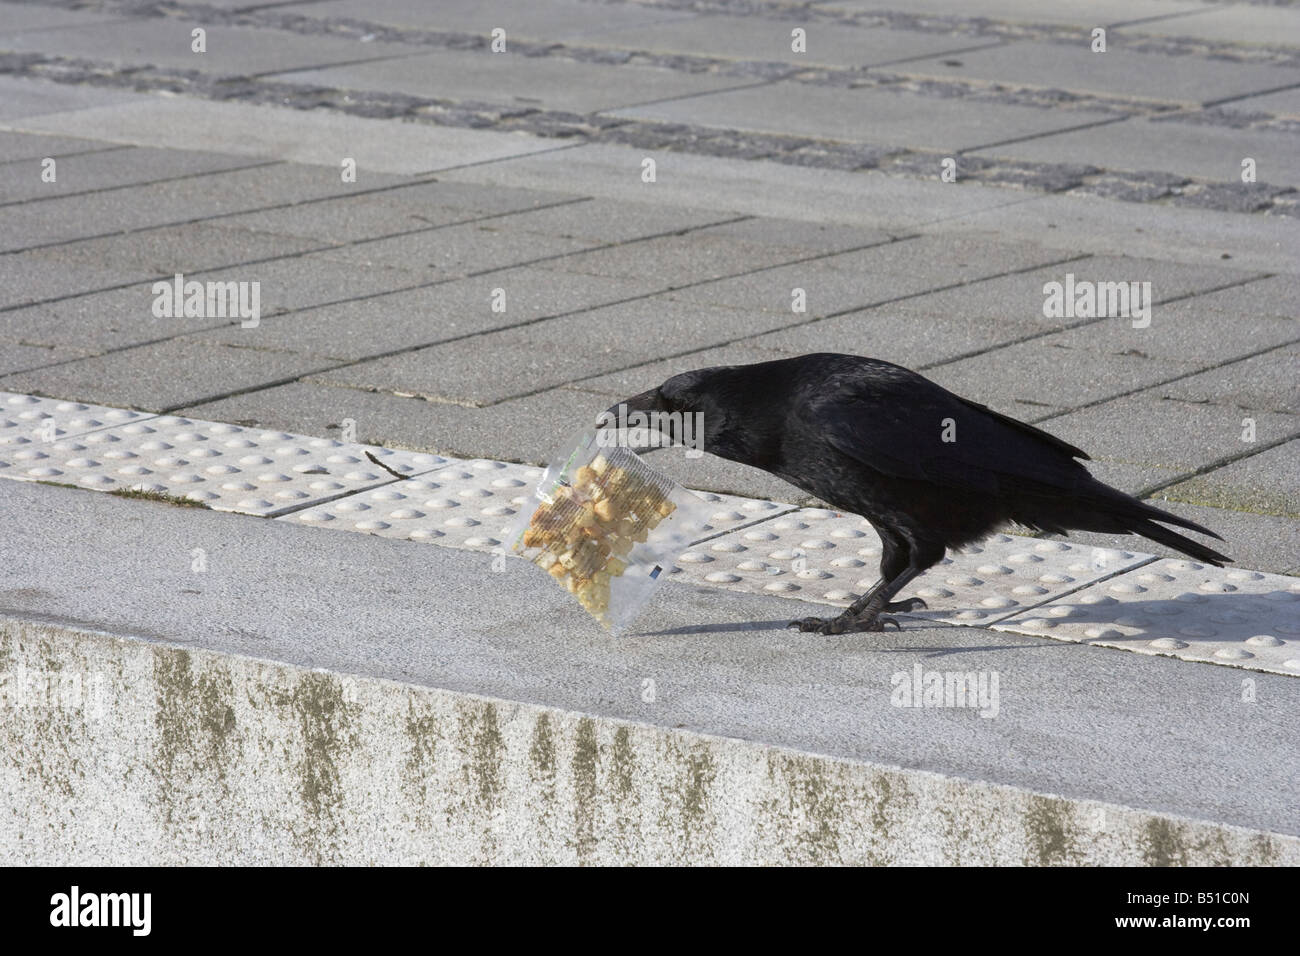 Big black raven on a city street. Close-up - Stock Image